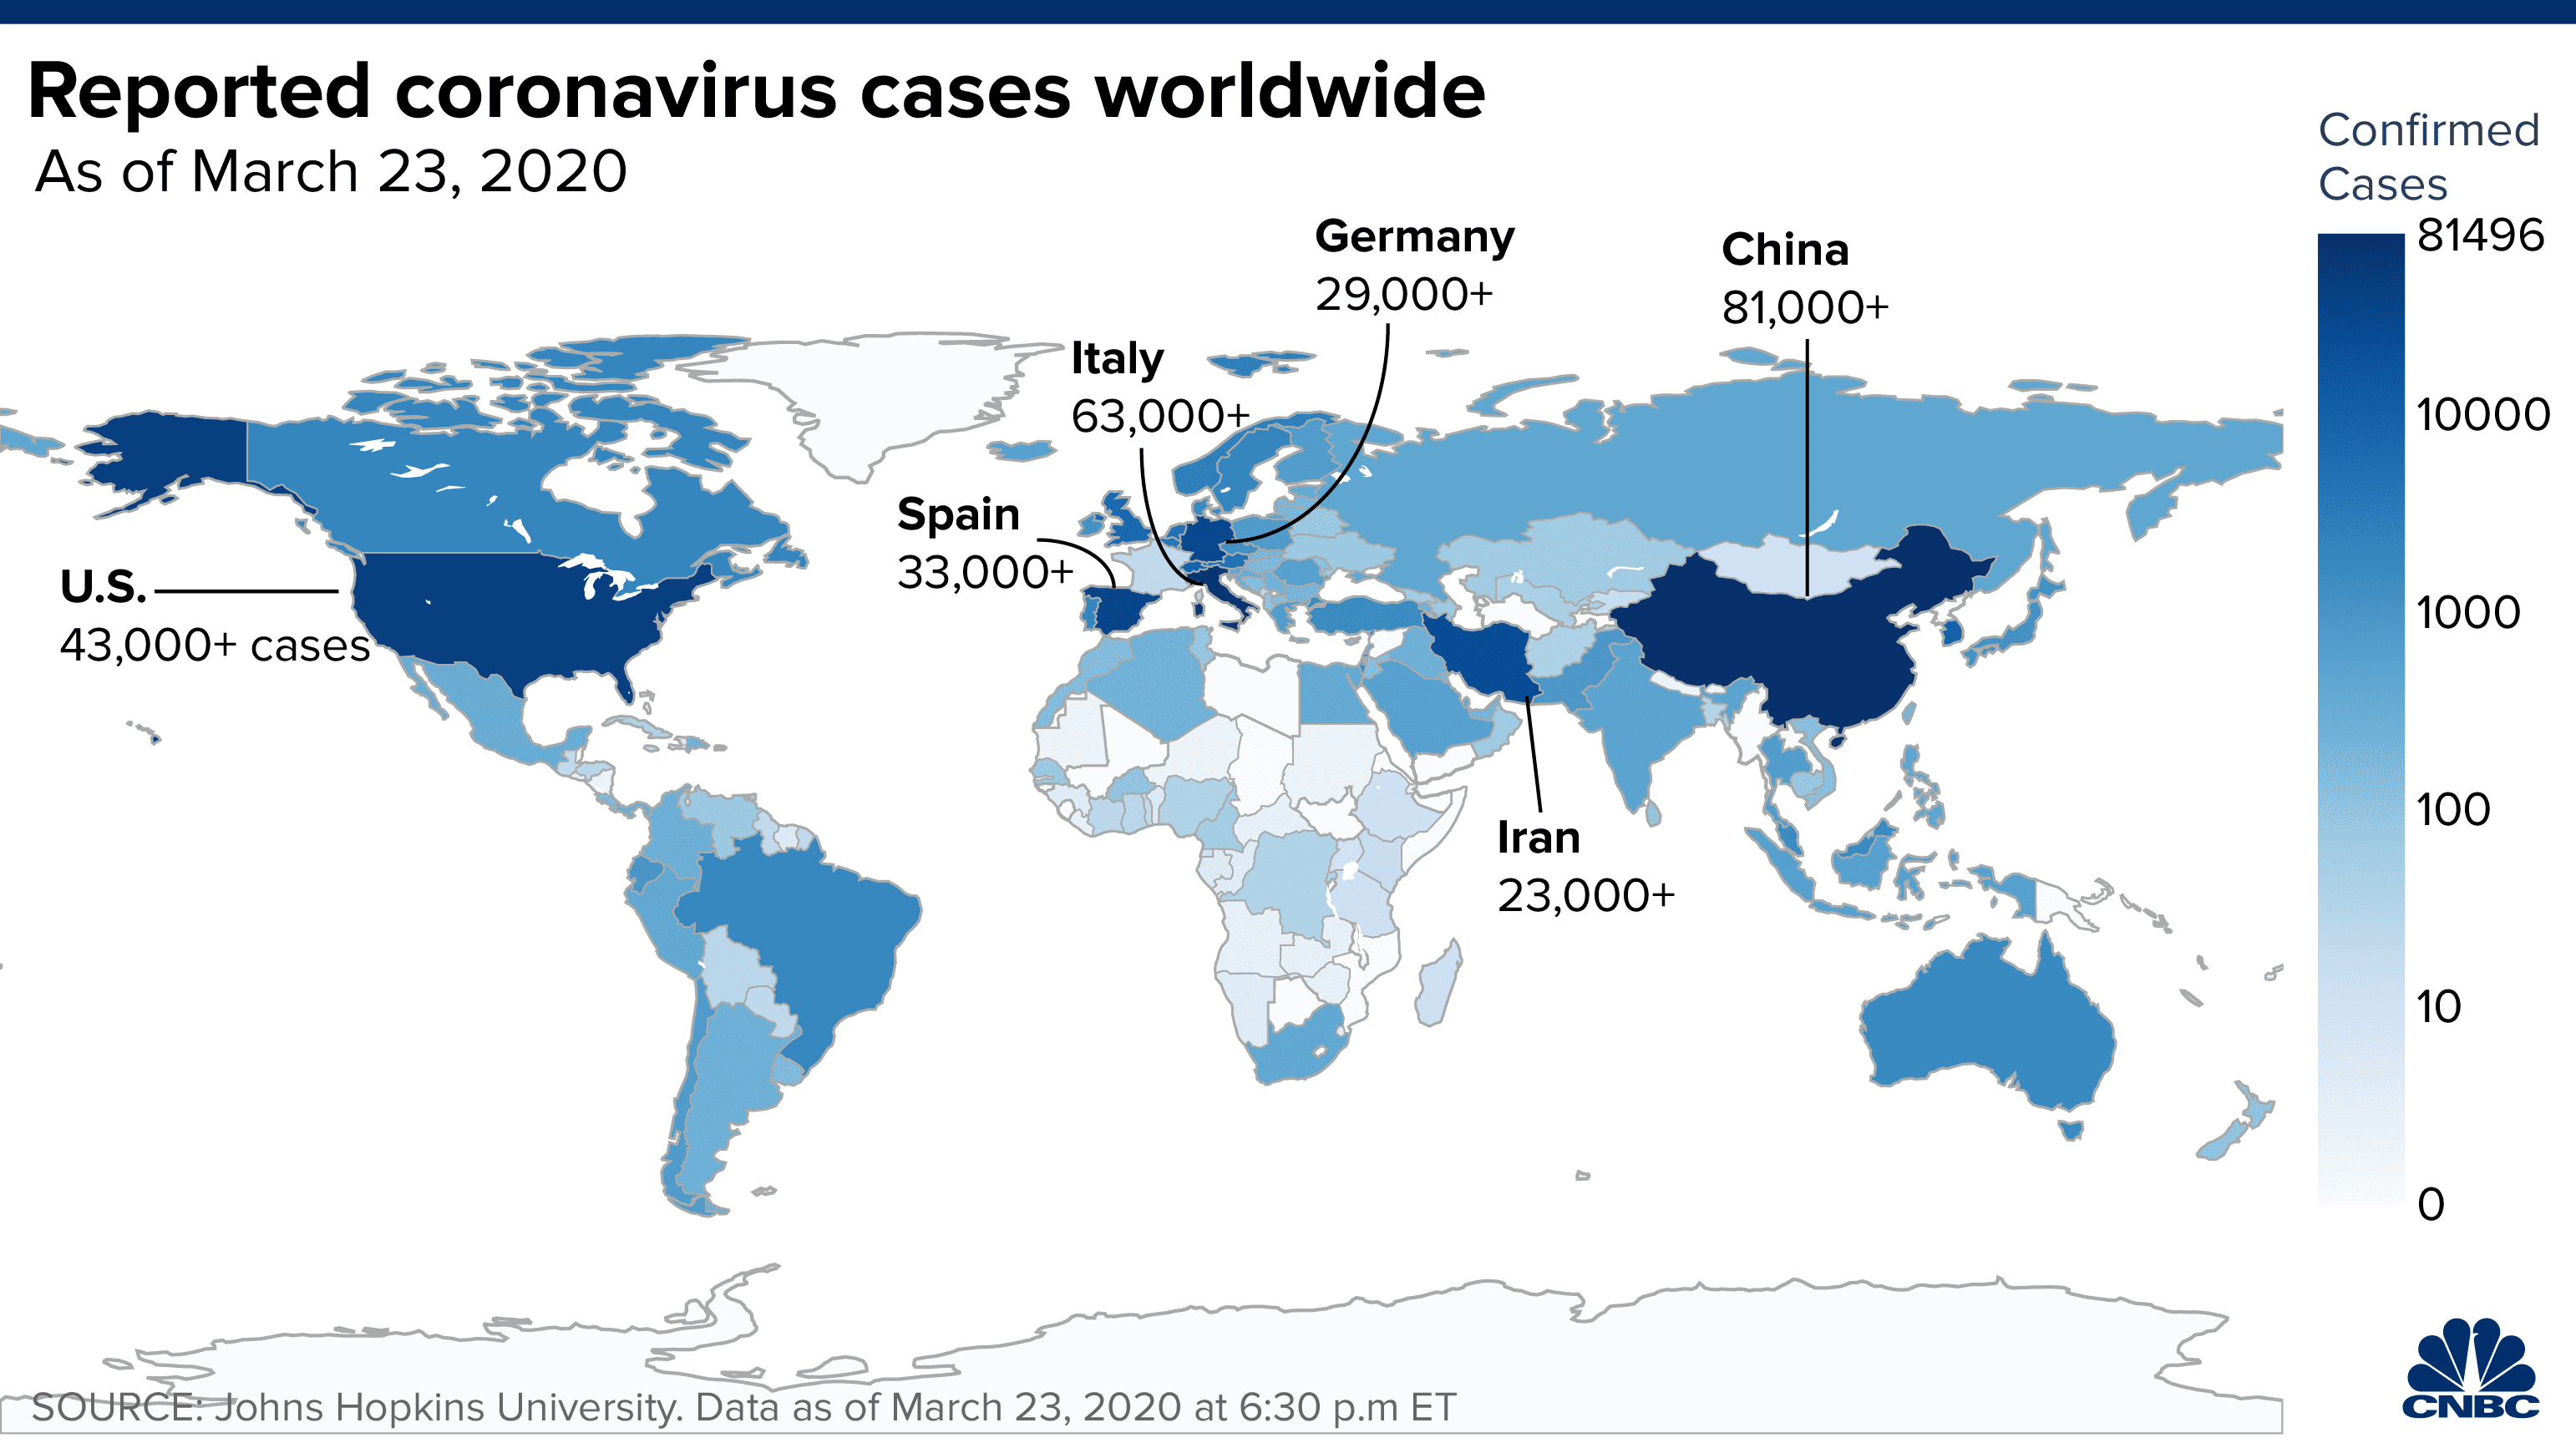 Global coronavirus cases cross 400,000, doubling in a week as pandemic accelerates